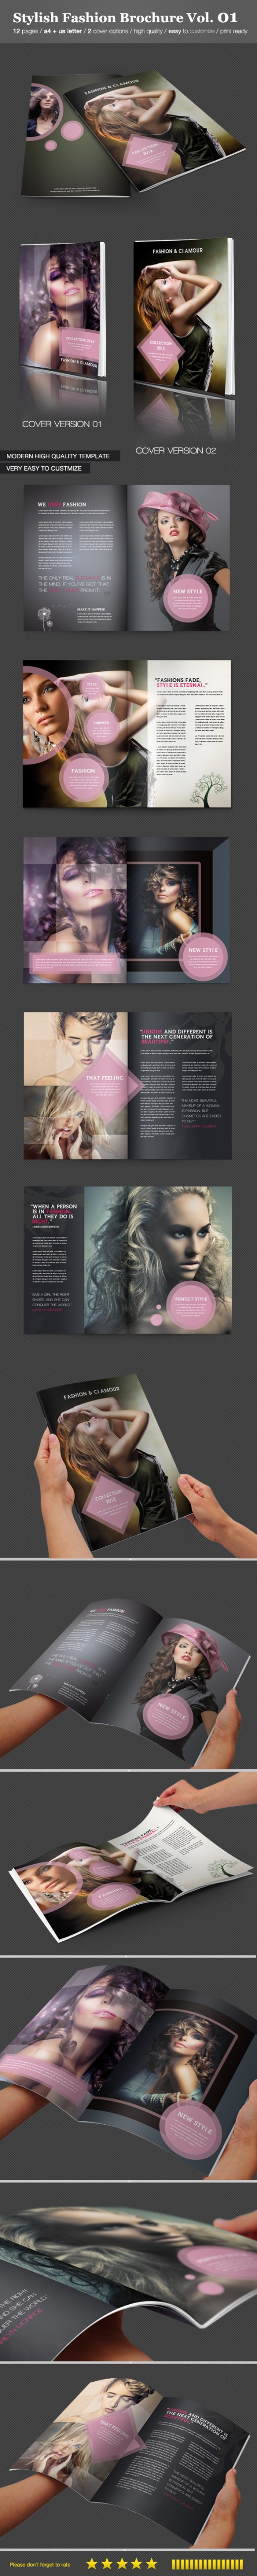 Stylish Fashion Brochure